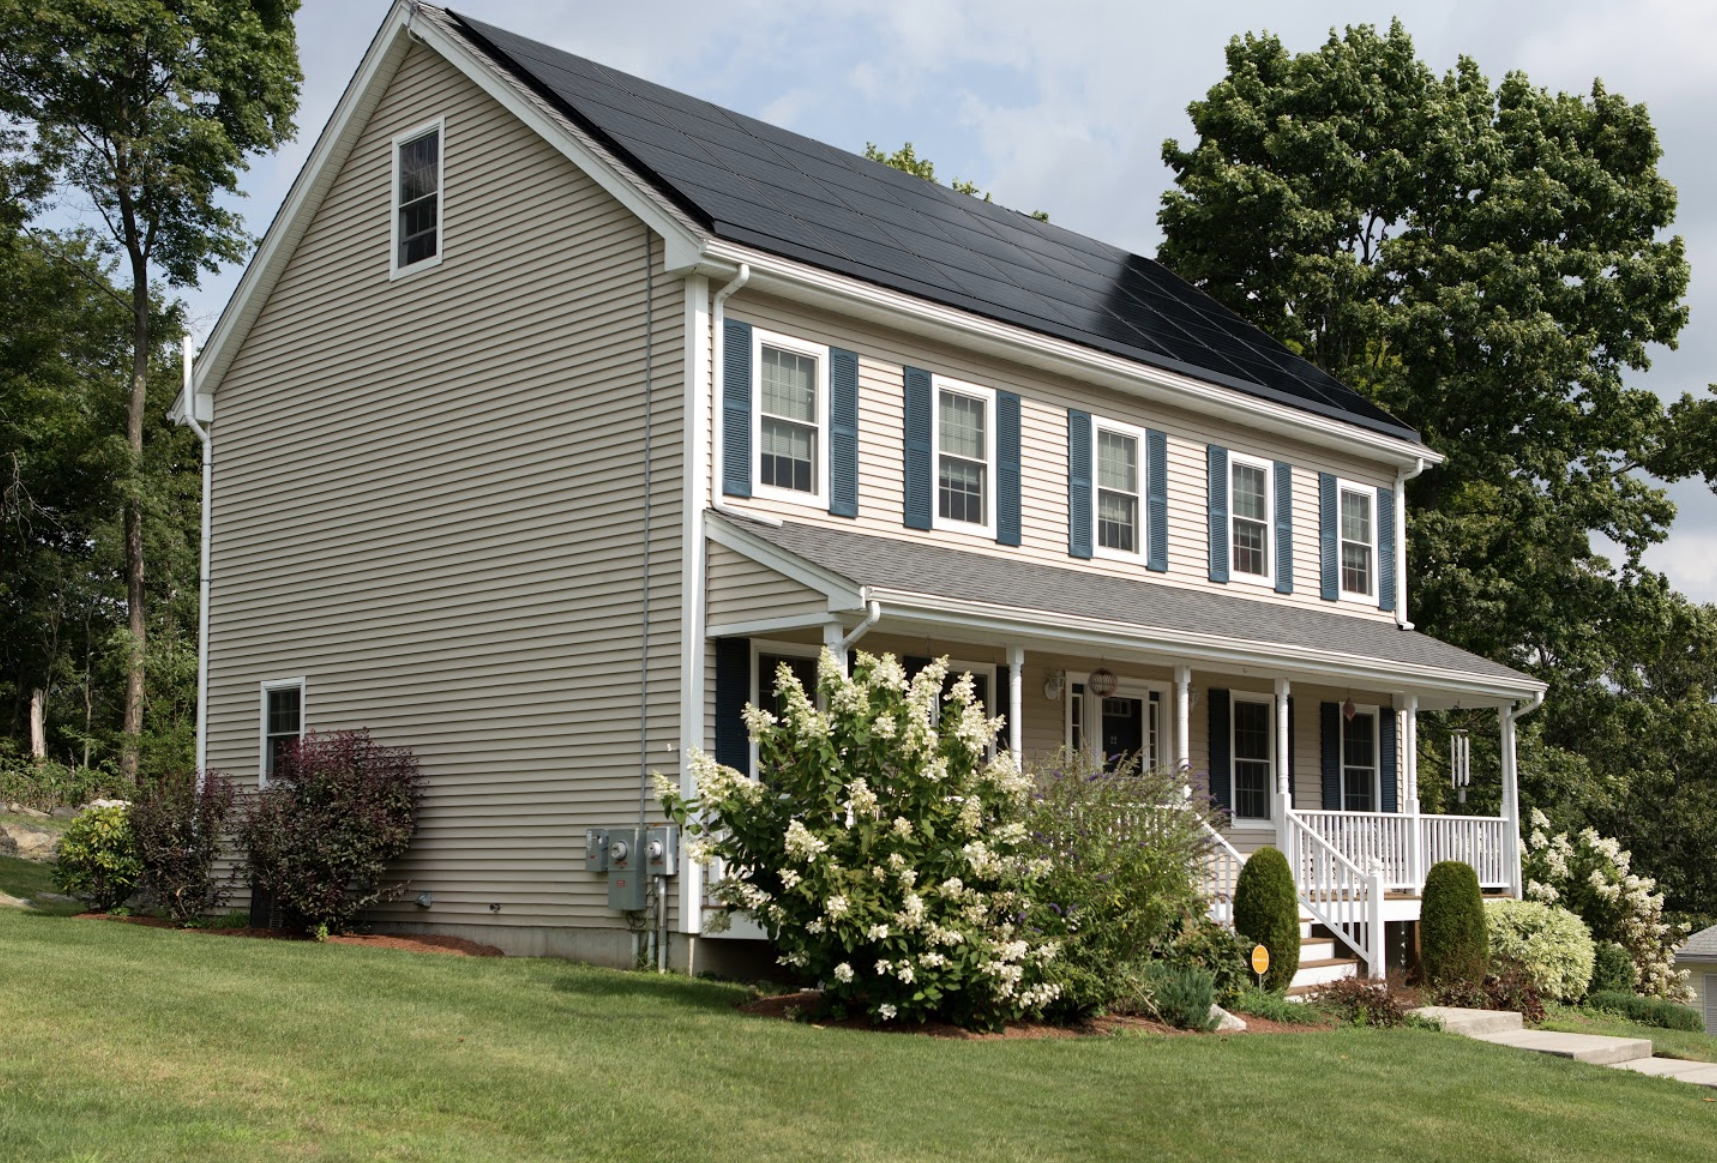 New Siding Increases Your Home's Value Blue Springs Siding & Windows